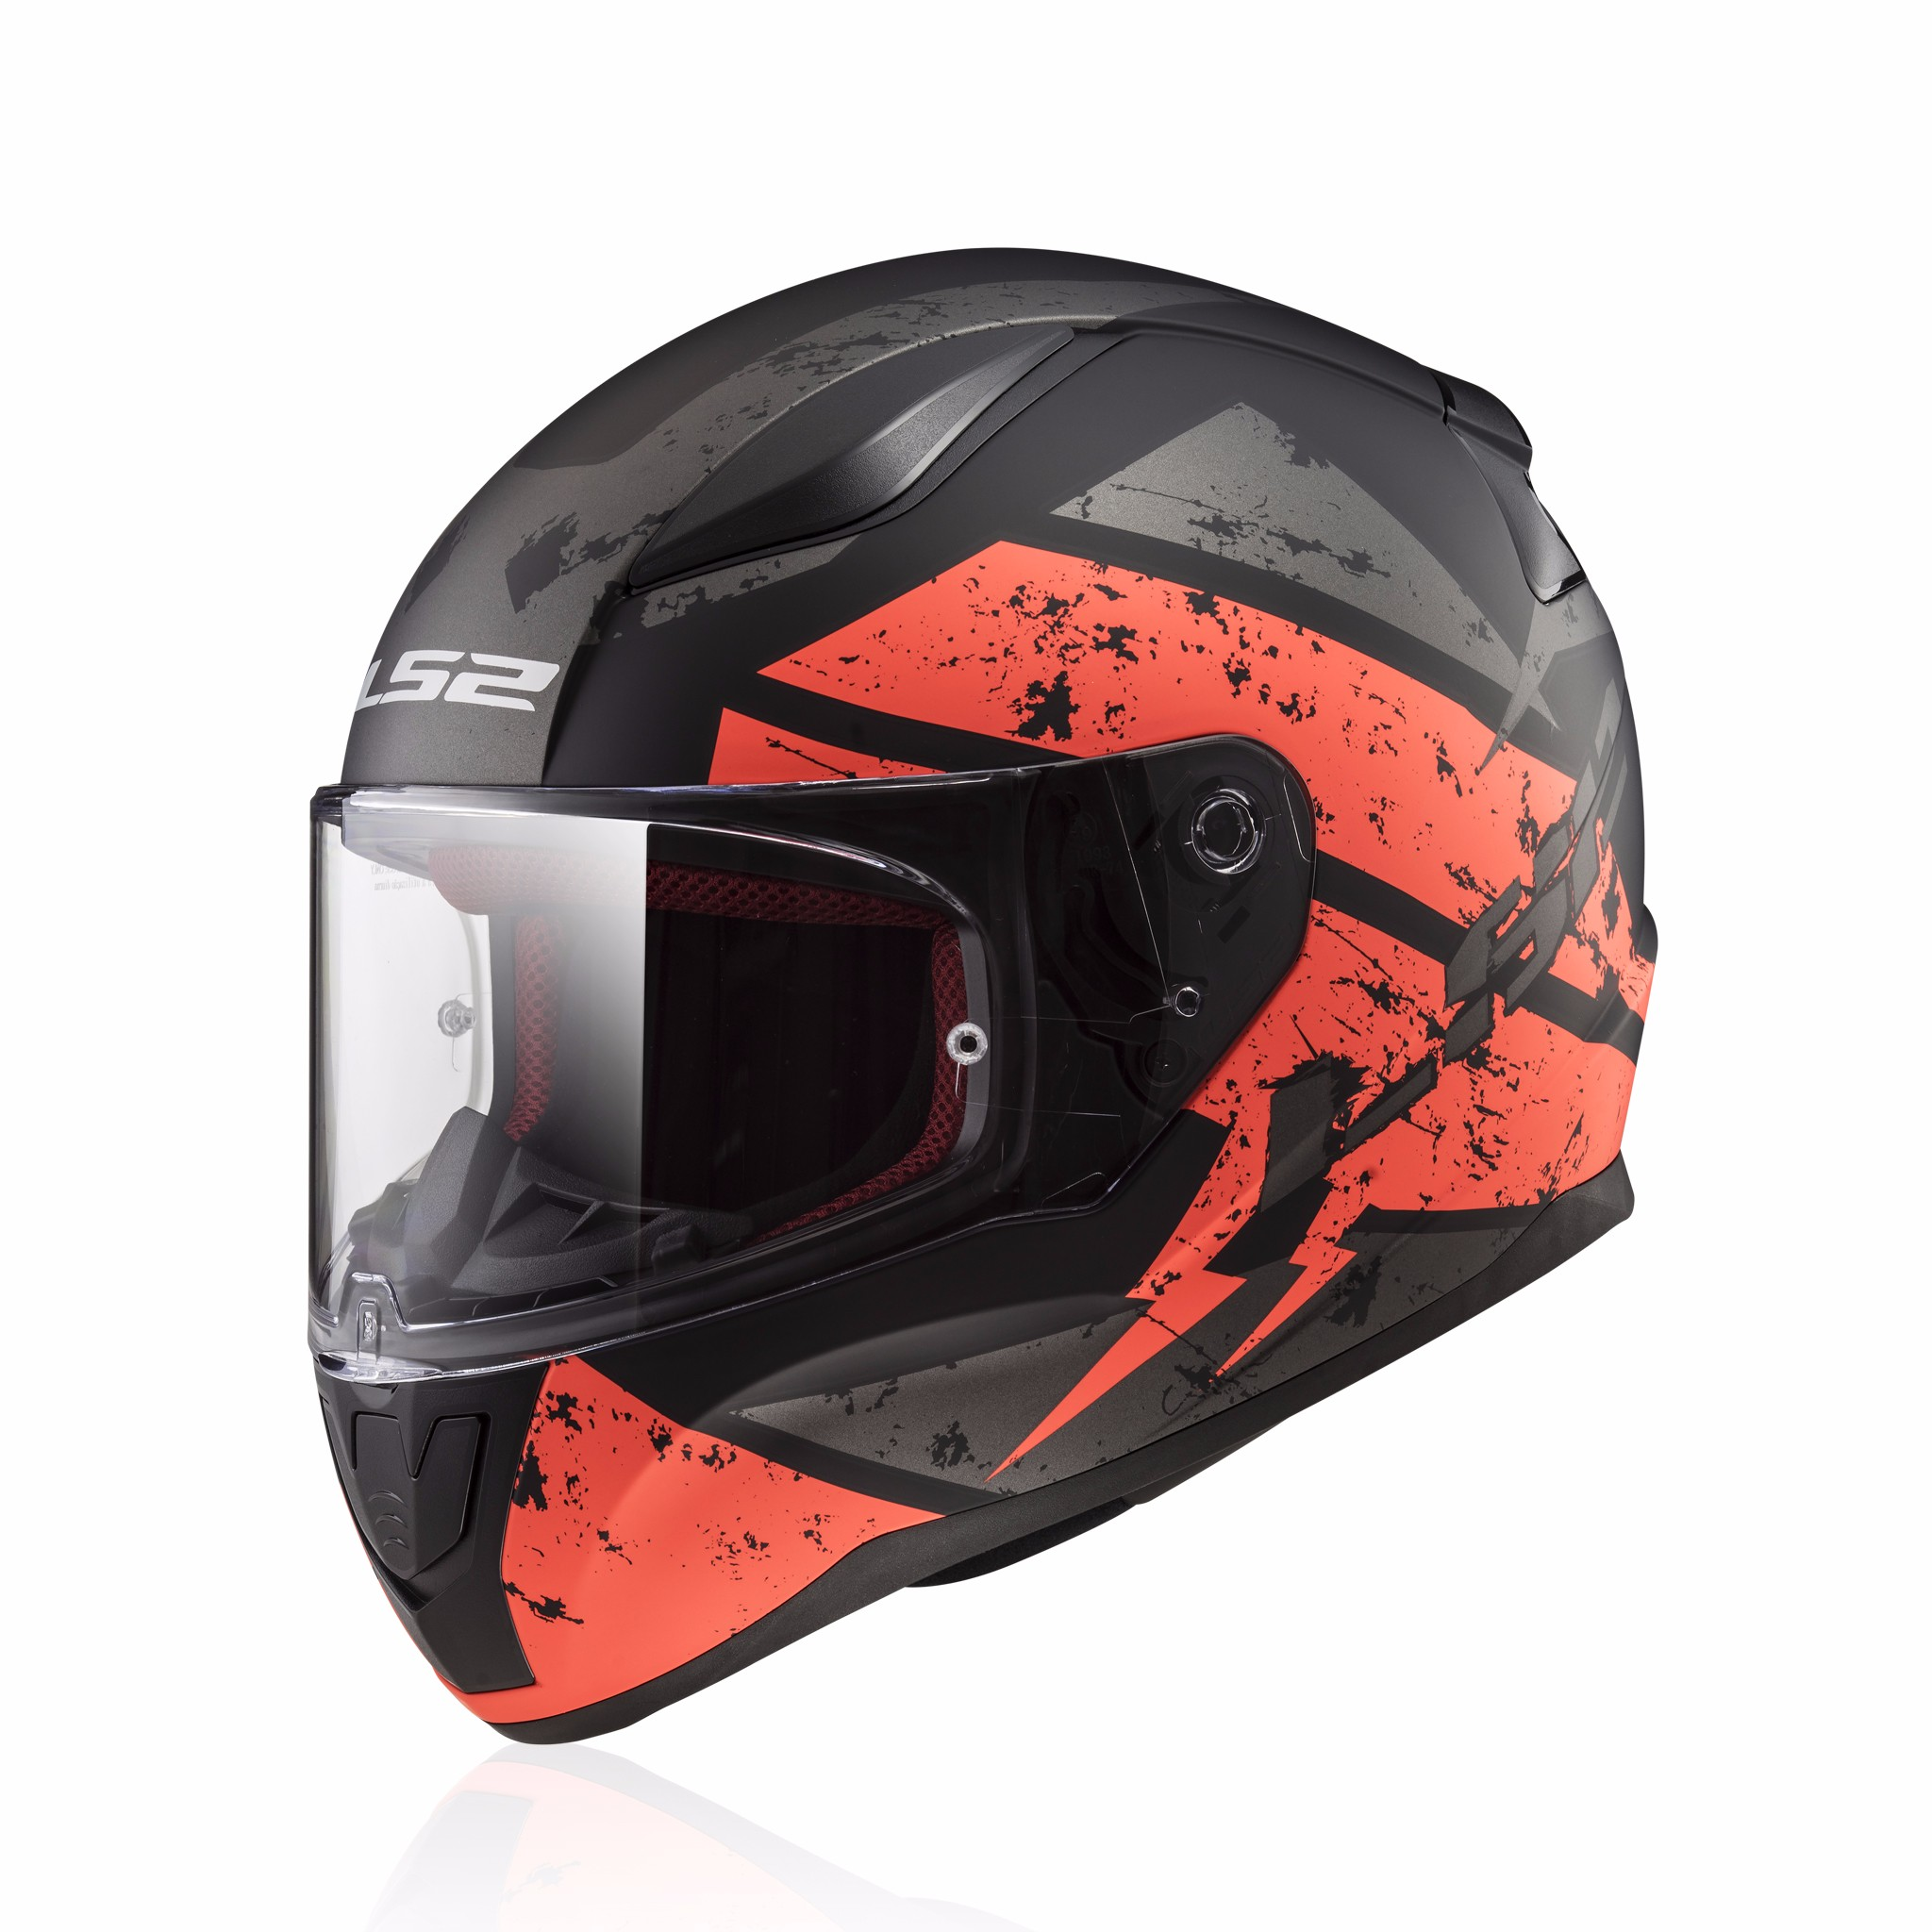 ls2-ff353-rapid-matt-black-fluo-orange_master - Copy - Copy